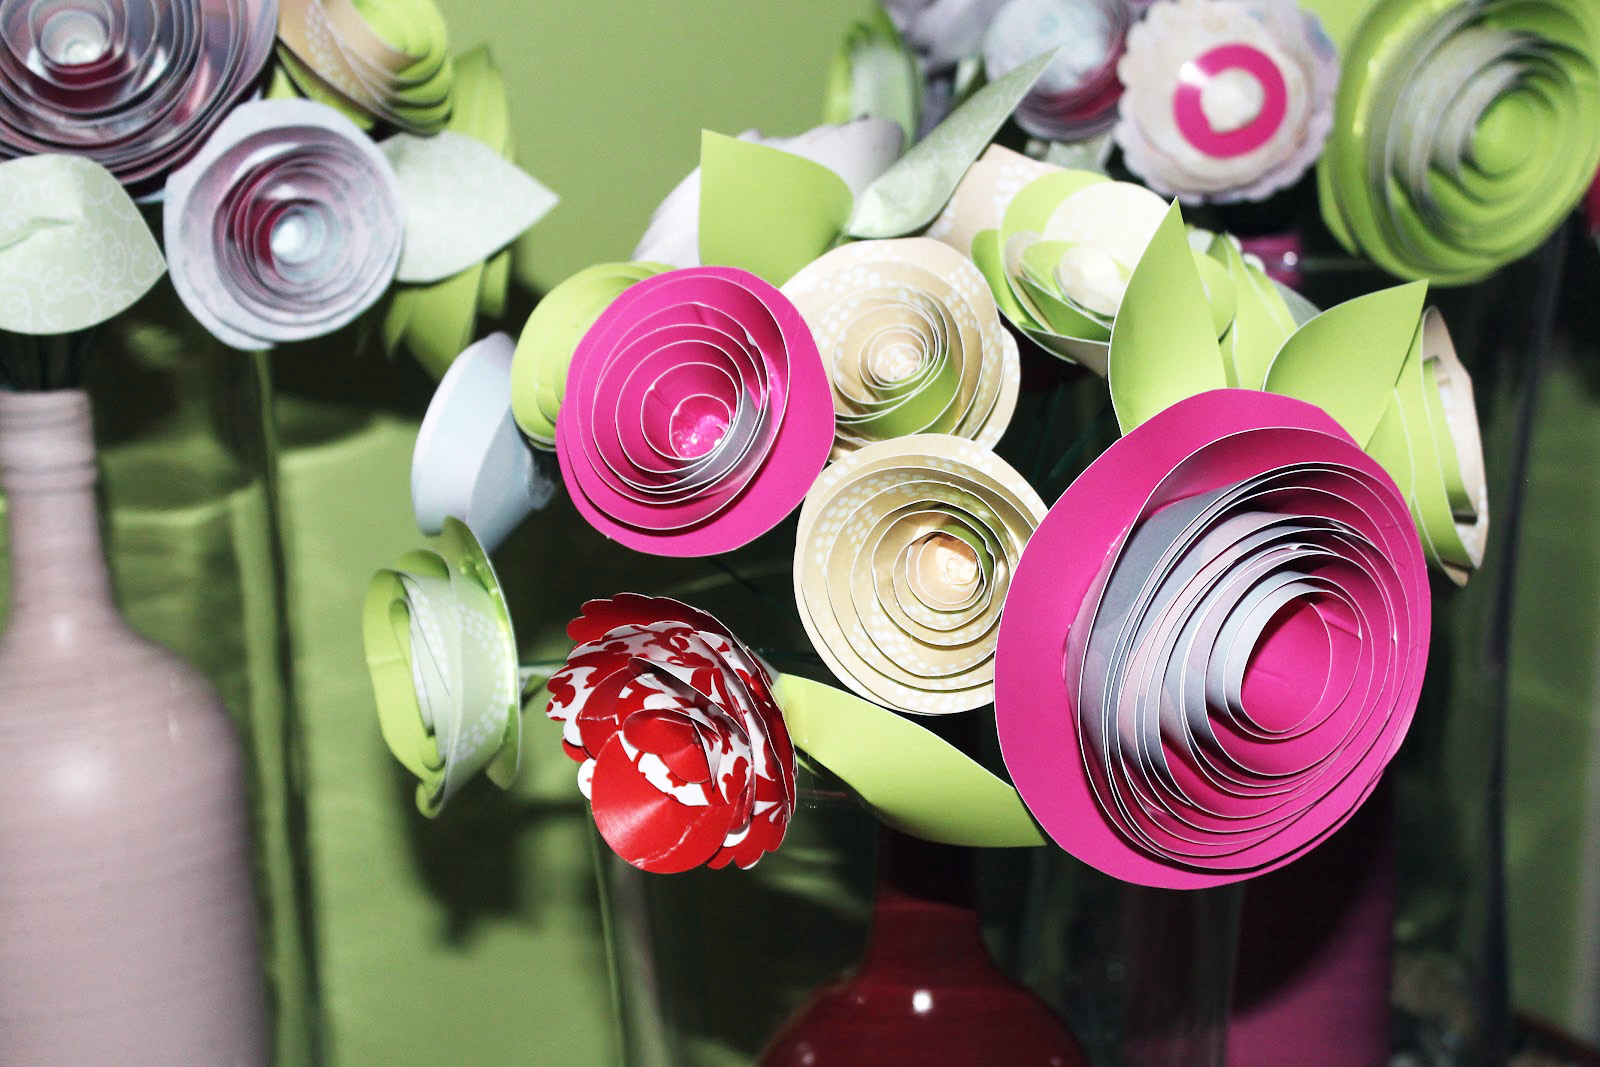 Diy how to make a beautiful paper flower centerpiece catch my party diy how to make a beautiful paper flower centerpiece catch my party izmirmasajfo